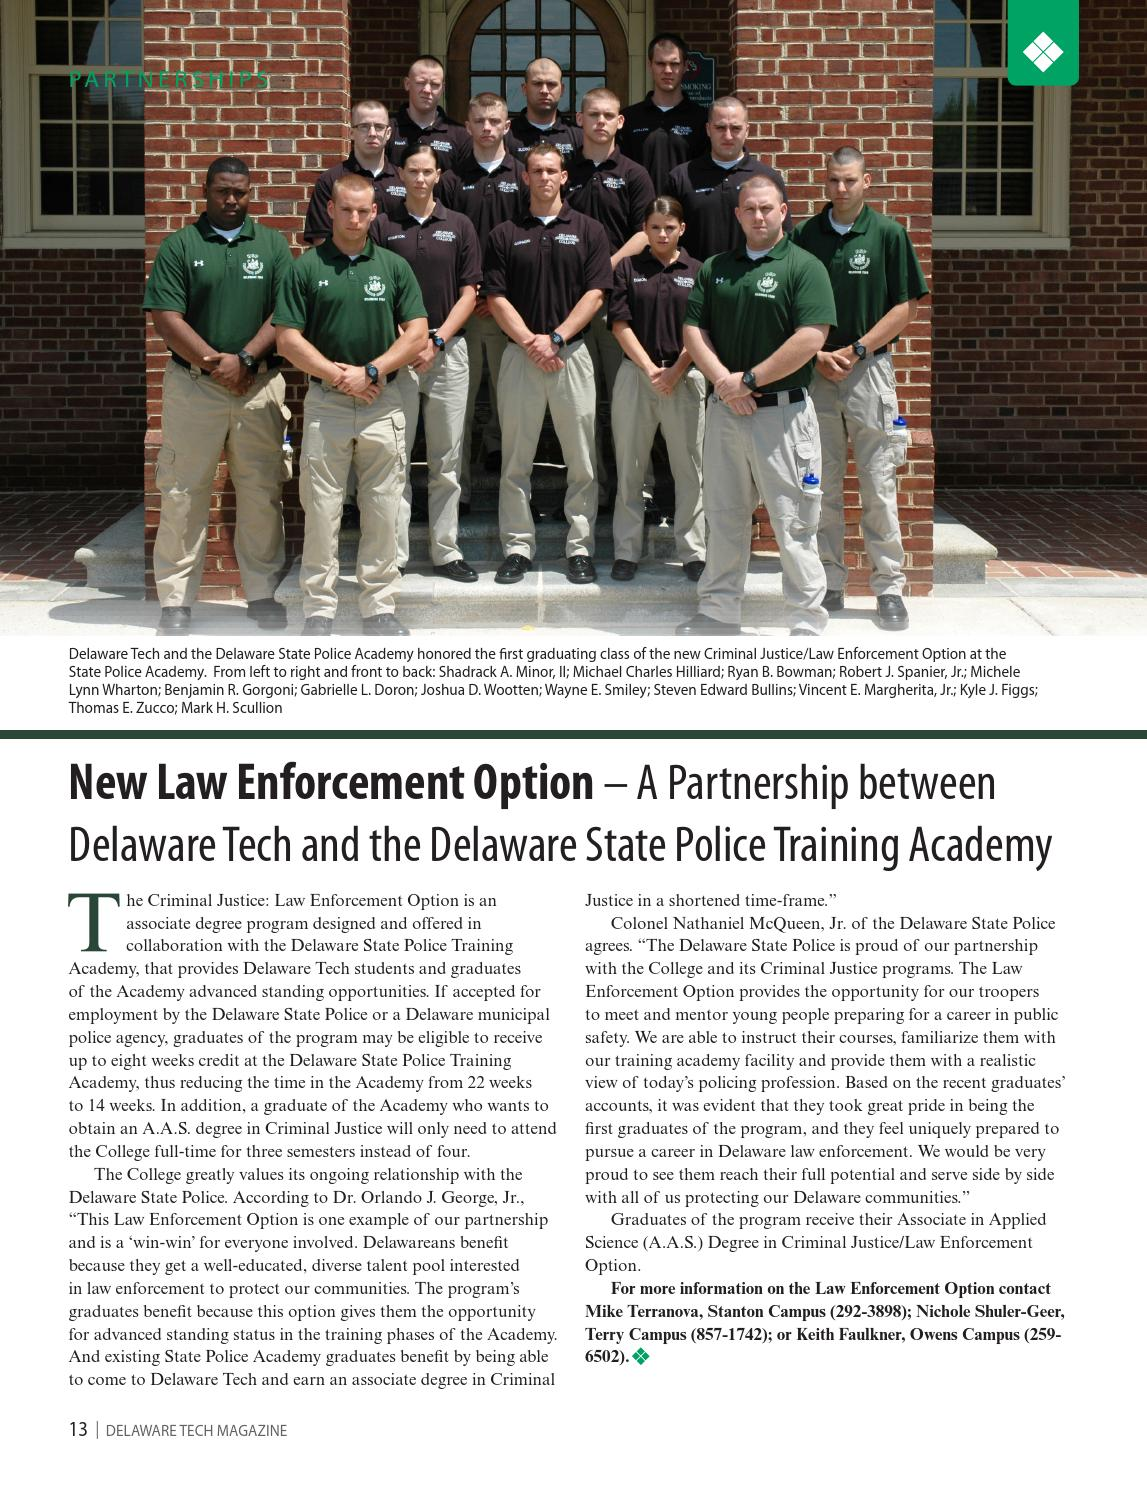 Delaware Tech Magazine - Fall/Winter 2013-14 by Delaware